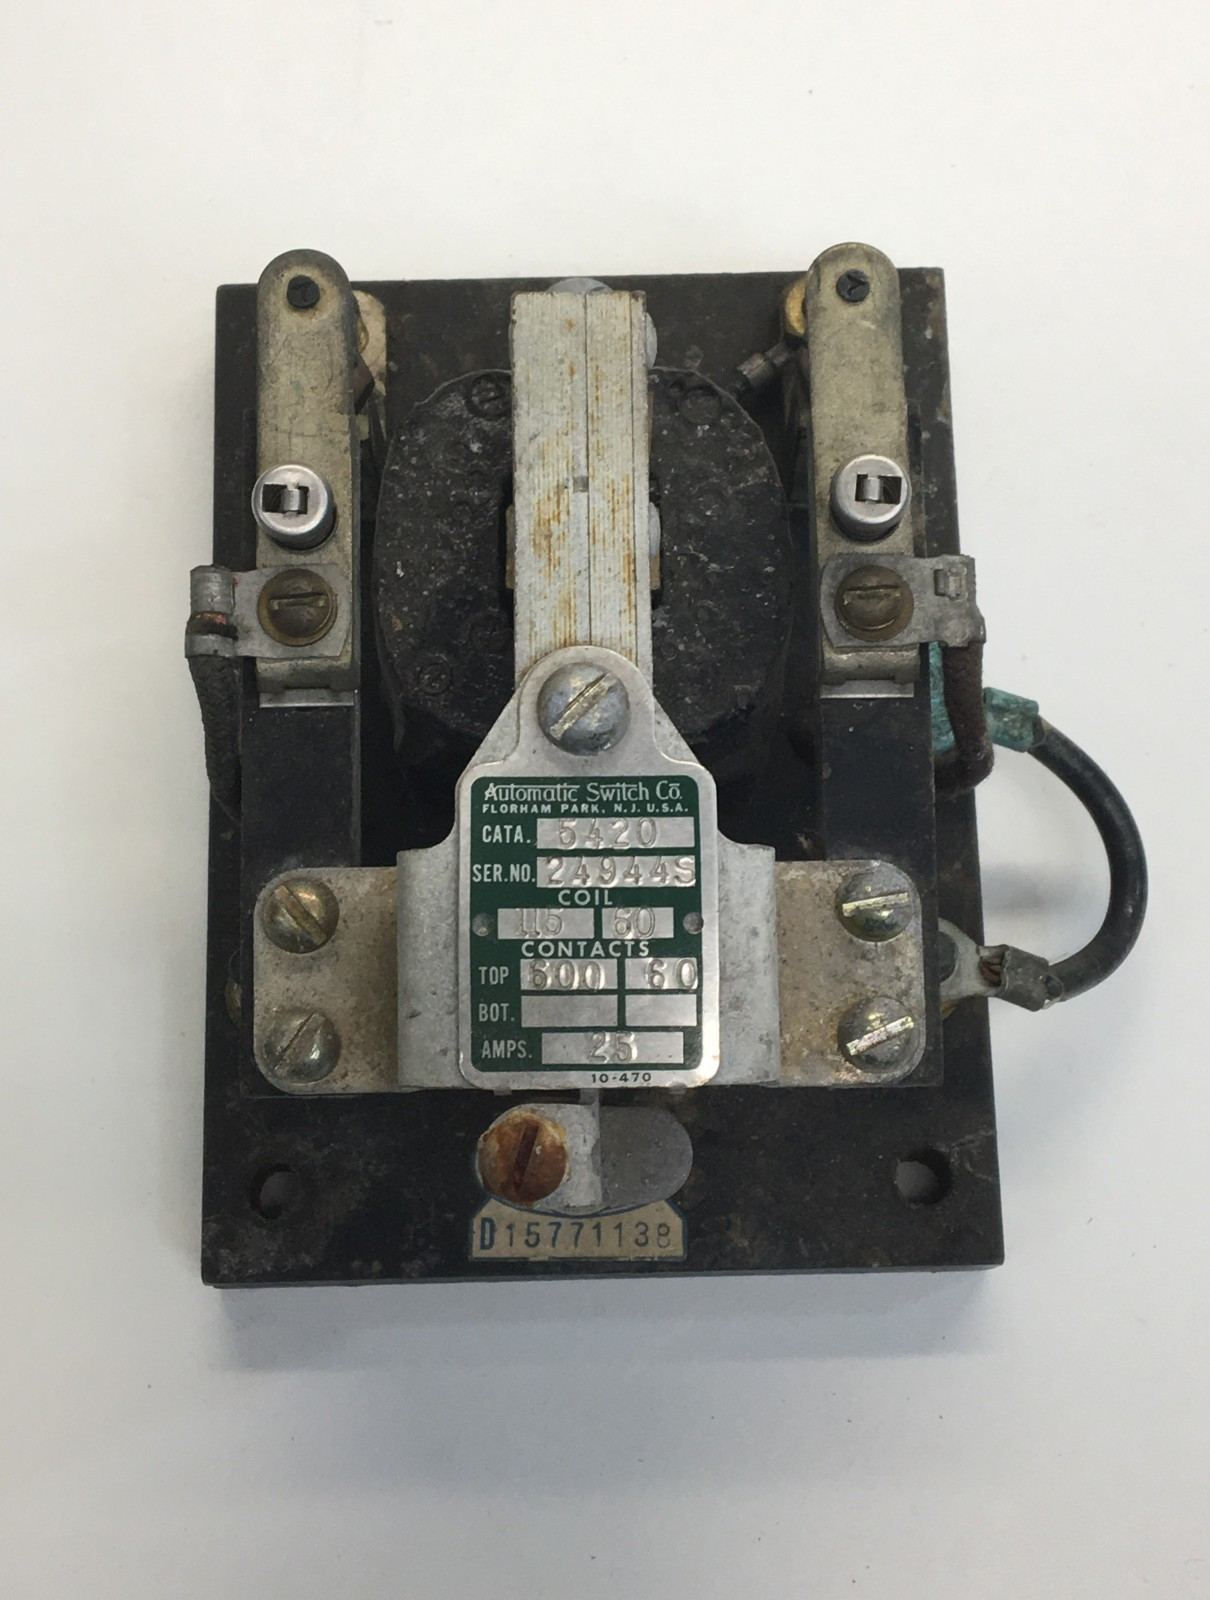 Automatic Switch Co 5420 115V COIL 25 Amps